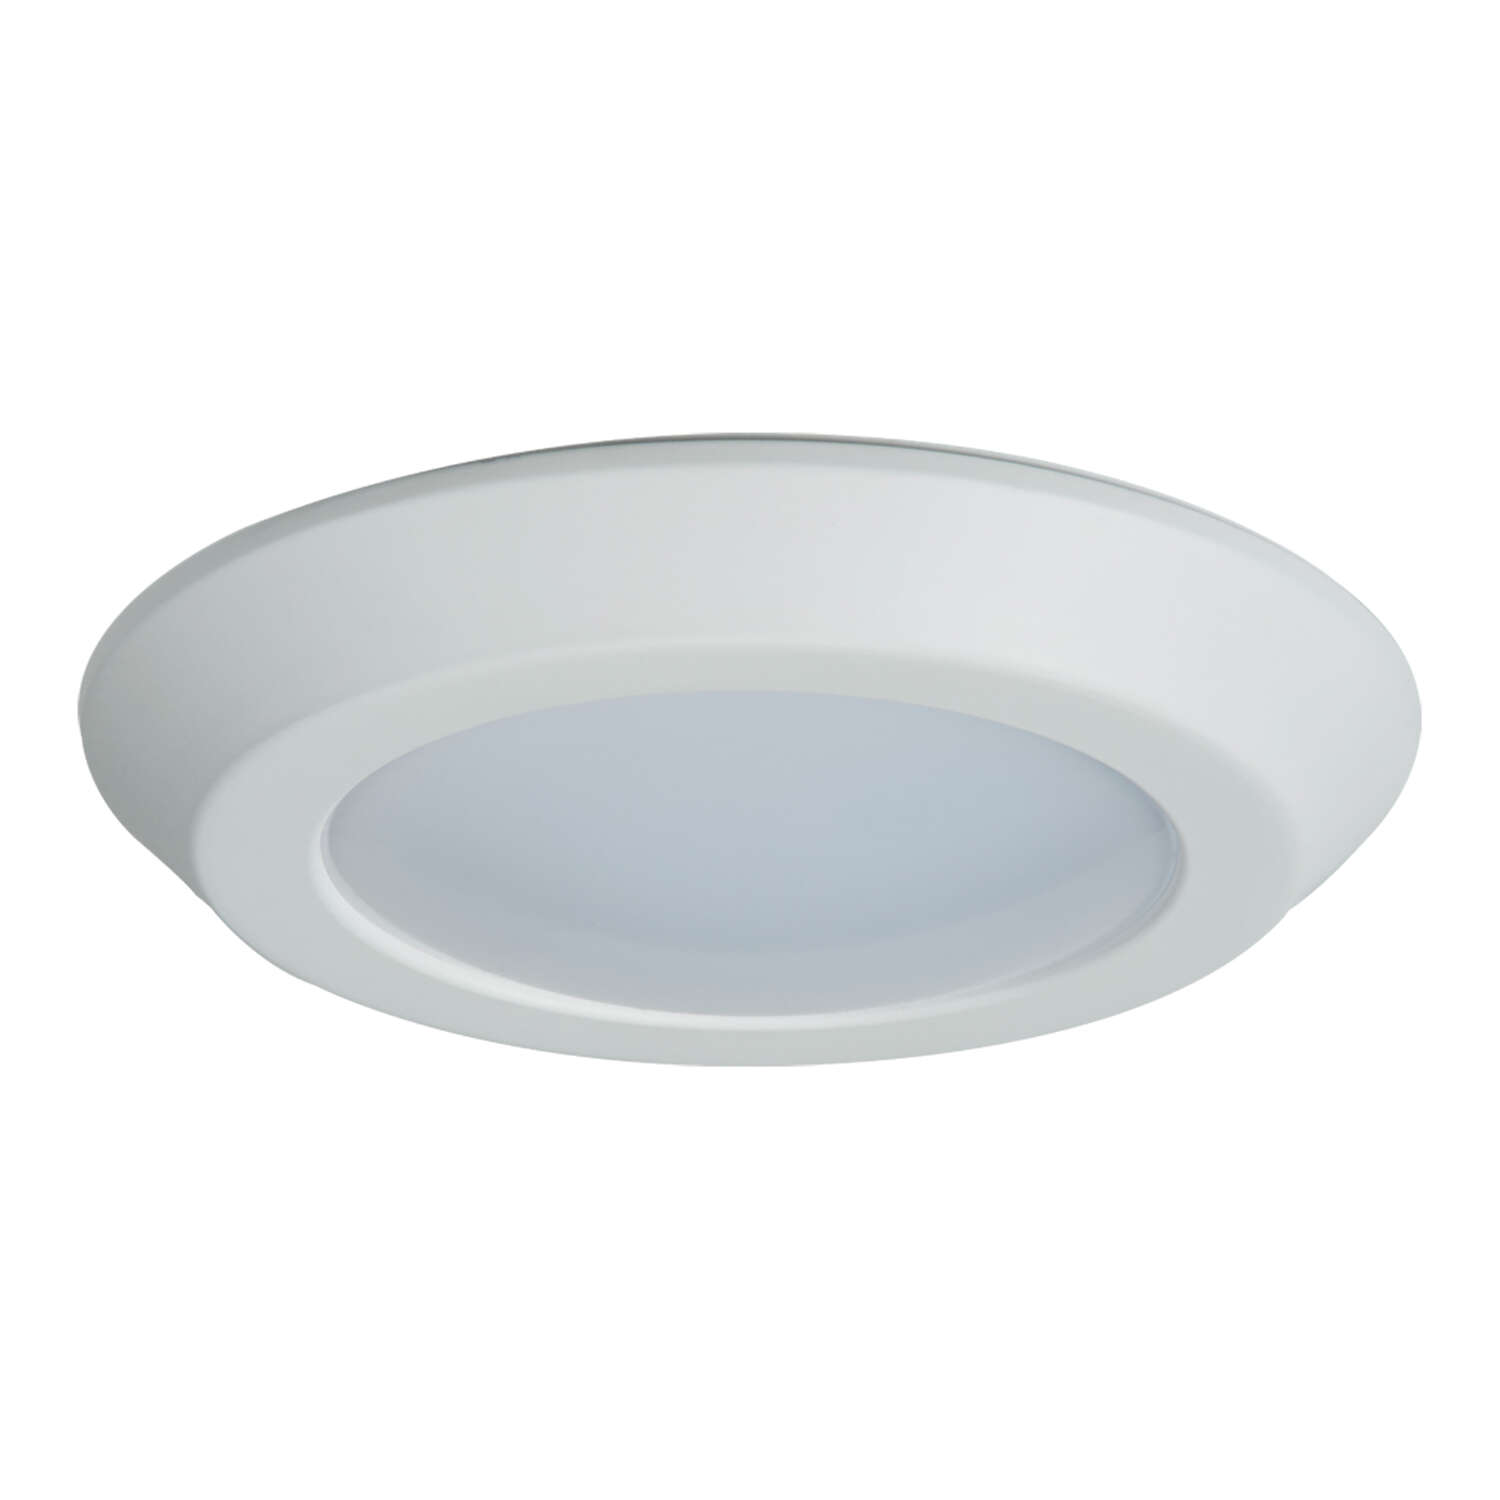 Halo  BLD6 Series  Matte  White  5 or 6 in. W LED  Recessed Light Trim  8.2 watt